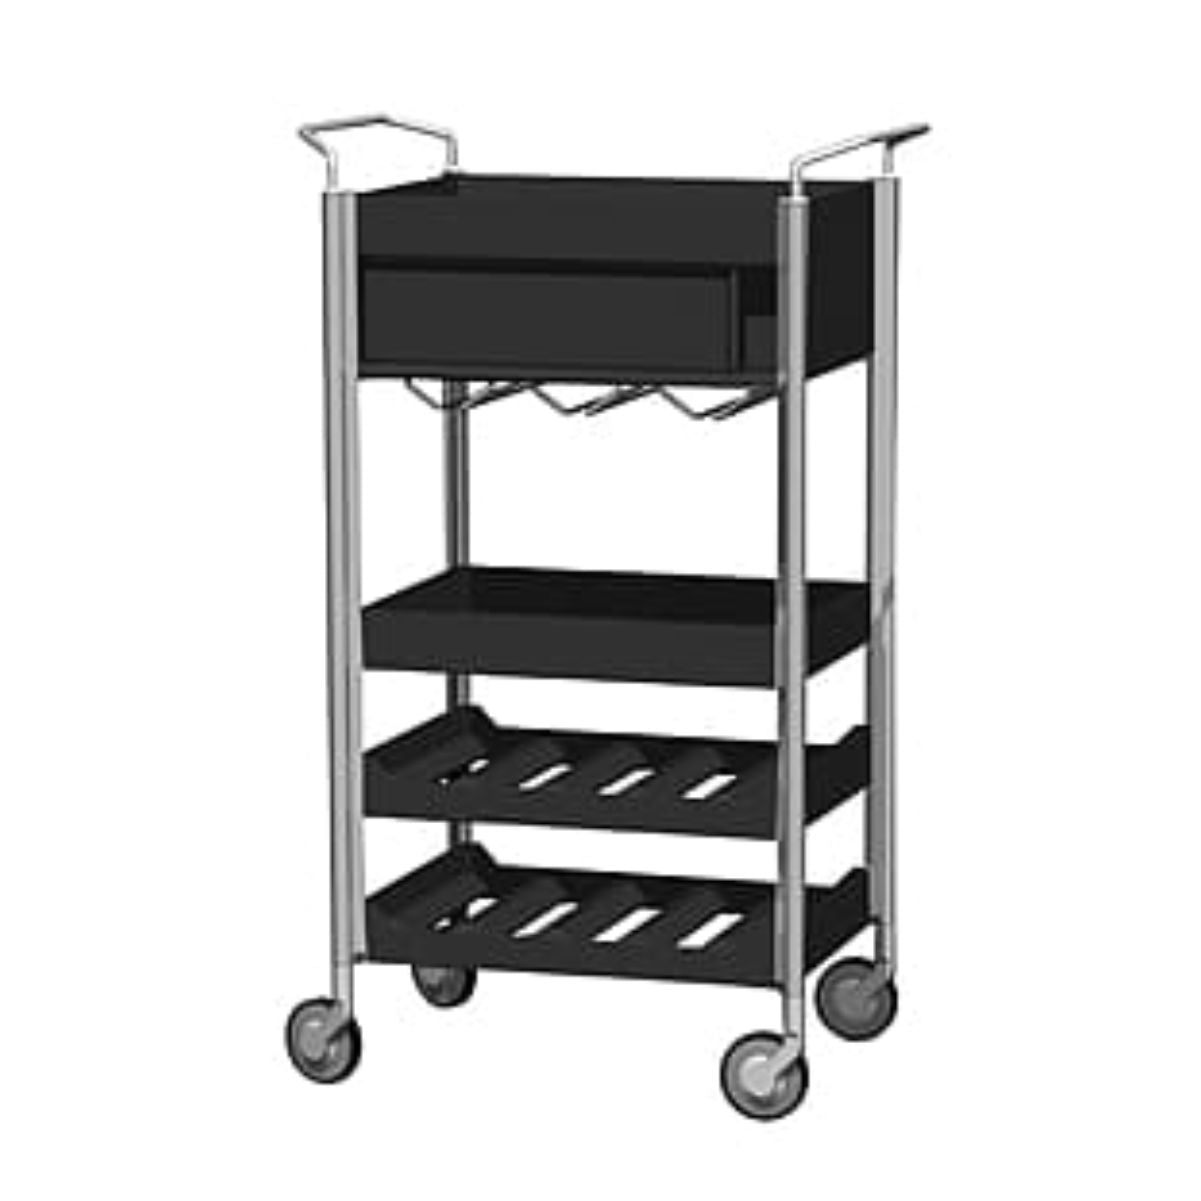 Studio Domo Ally Wine trolley, black